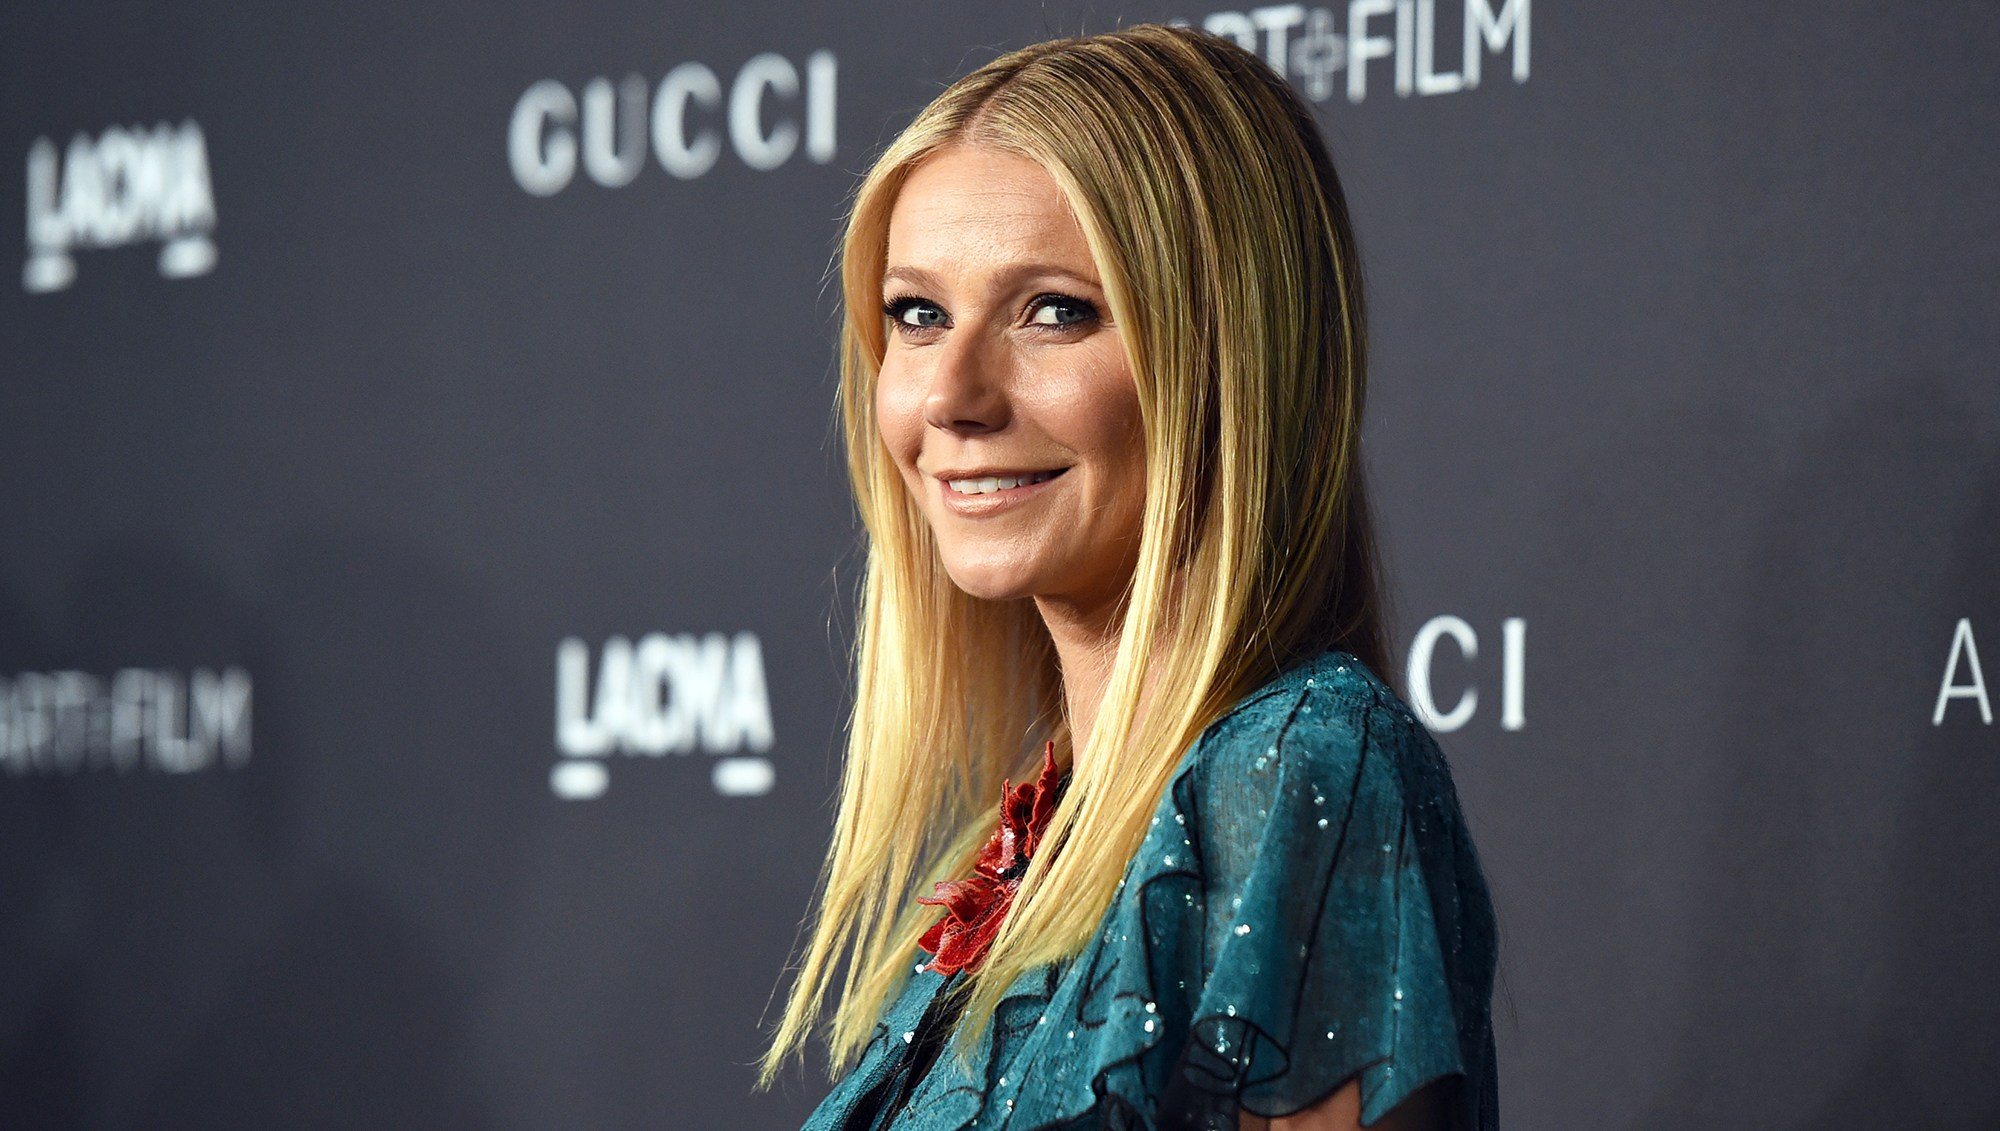 Gwyneth Paltrow Was Unsure if She'd Remarry Until She Met Brad Falchuk: He's 'Worth Making This Commitment to'